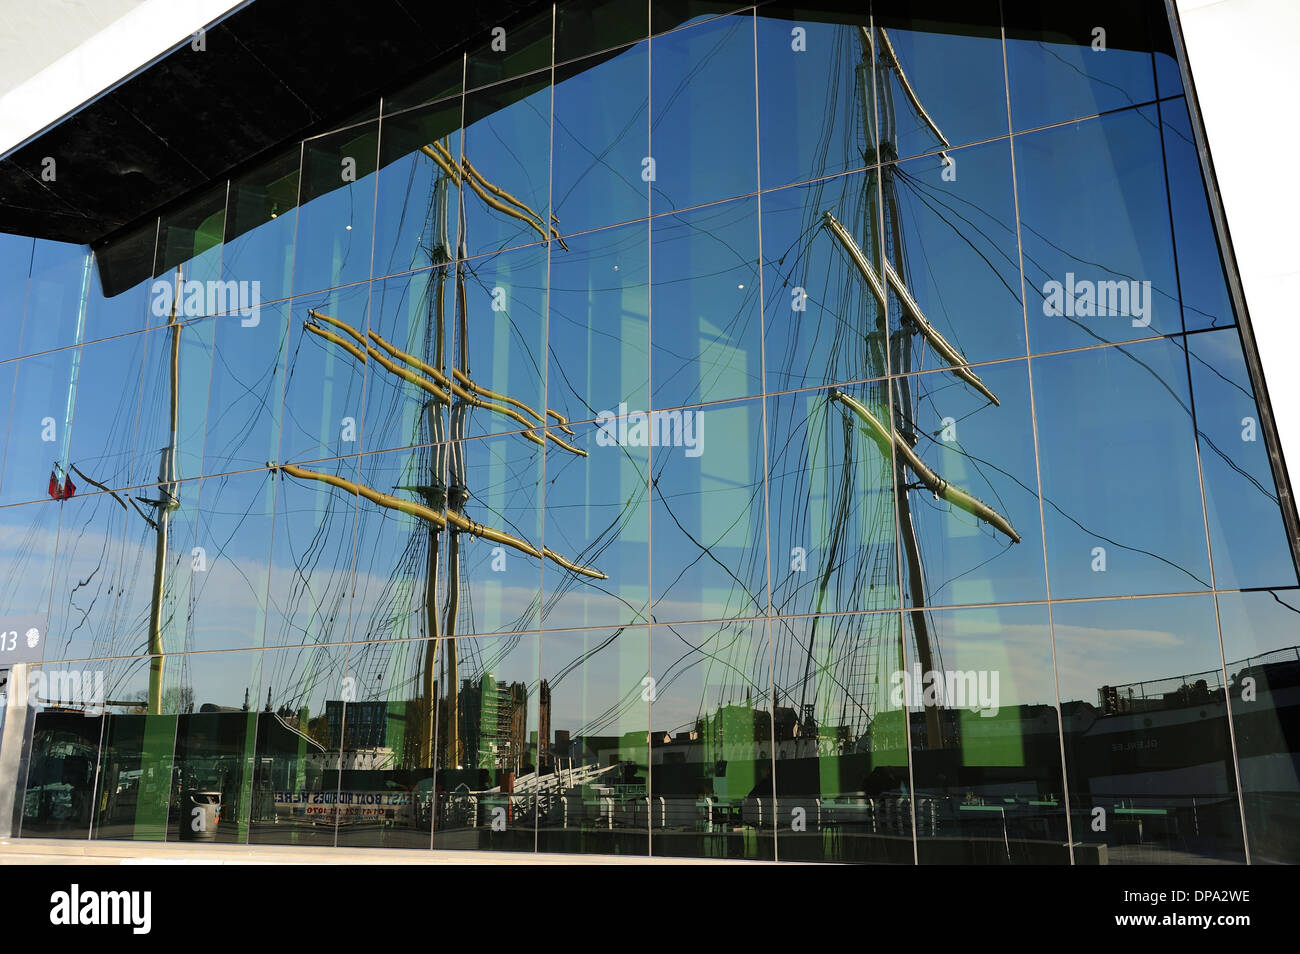 Reflection of tall ship SV Glenlee at new Riverside Museum of Transport, Glasgow, Scotland - Stock Image